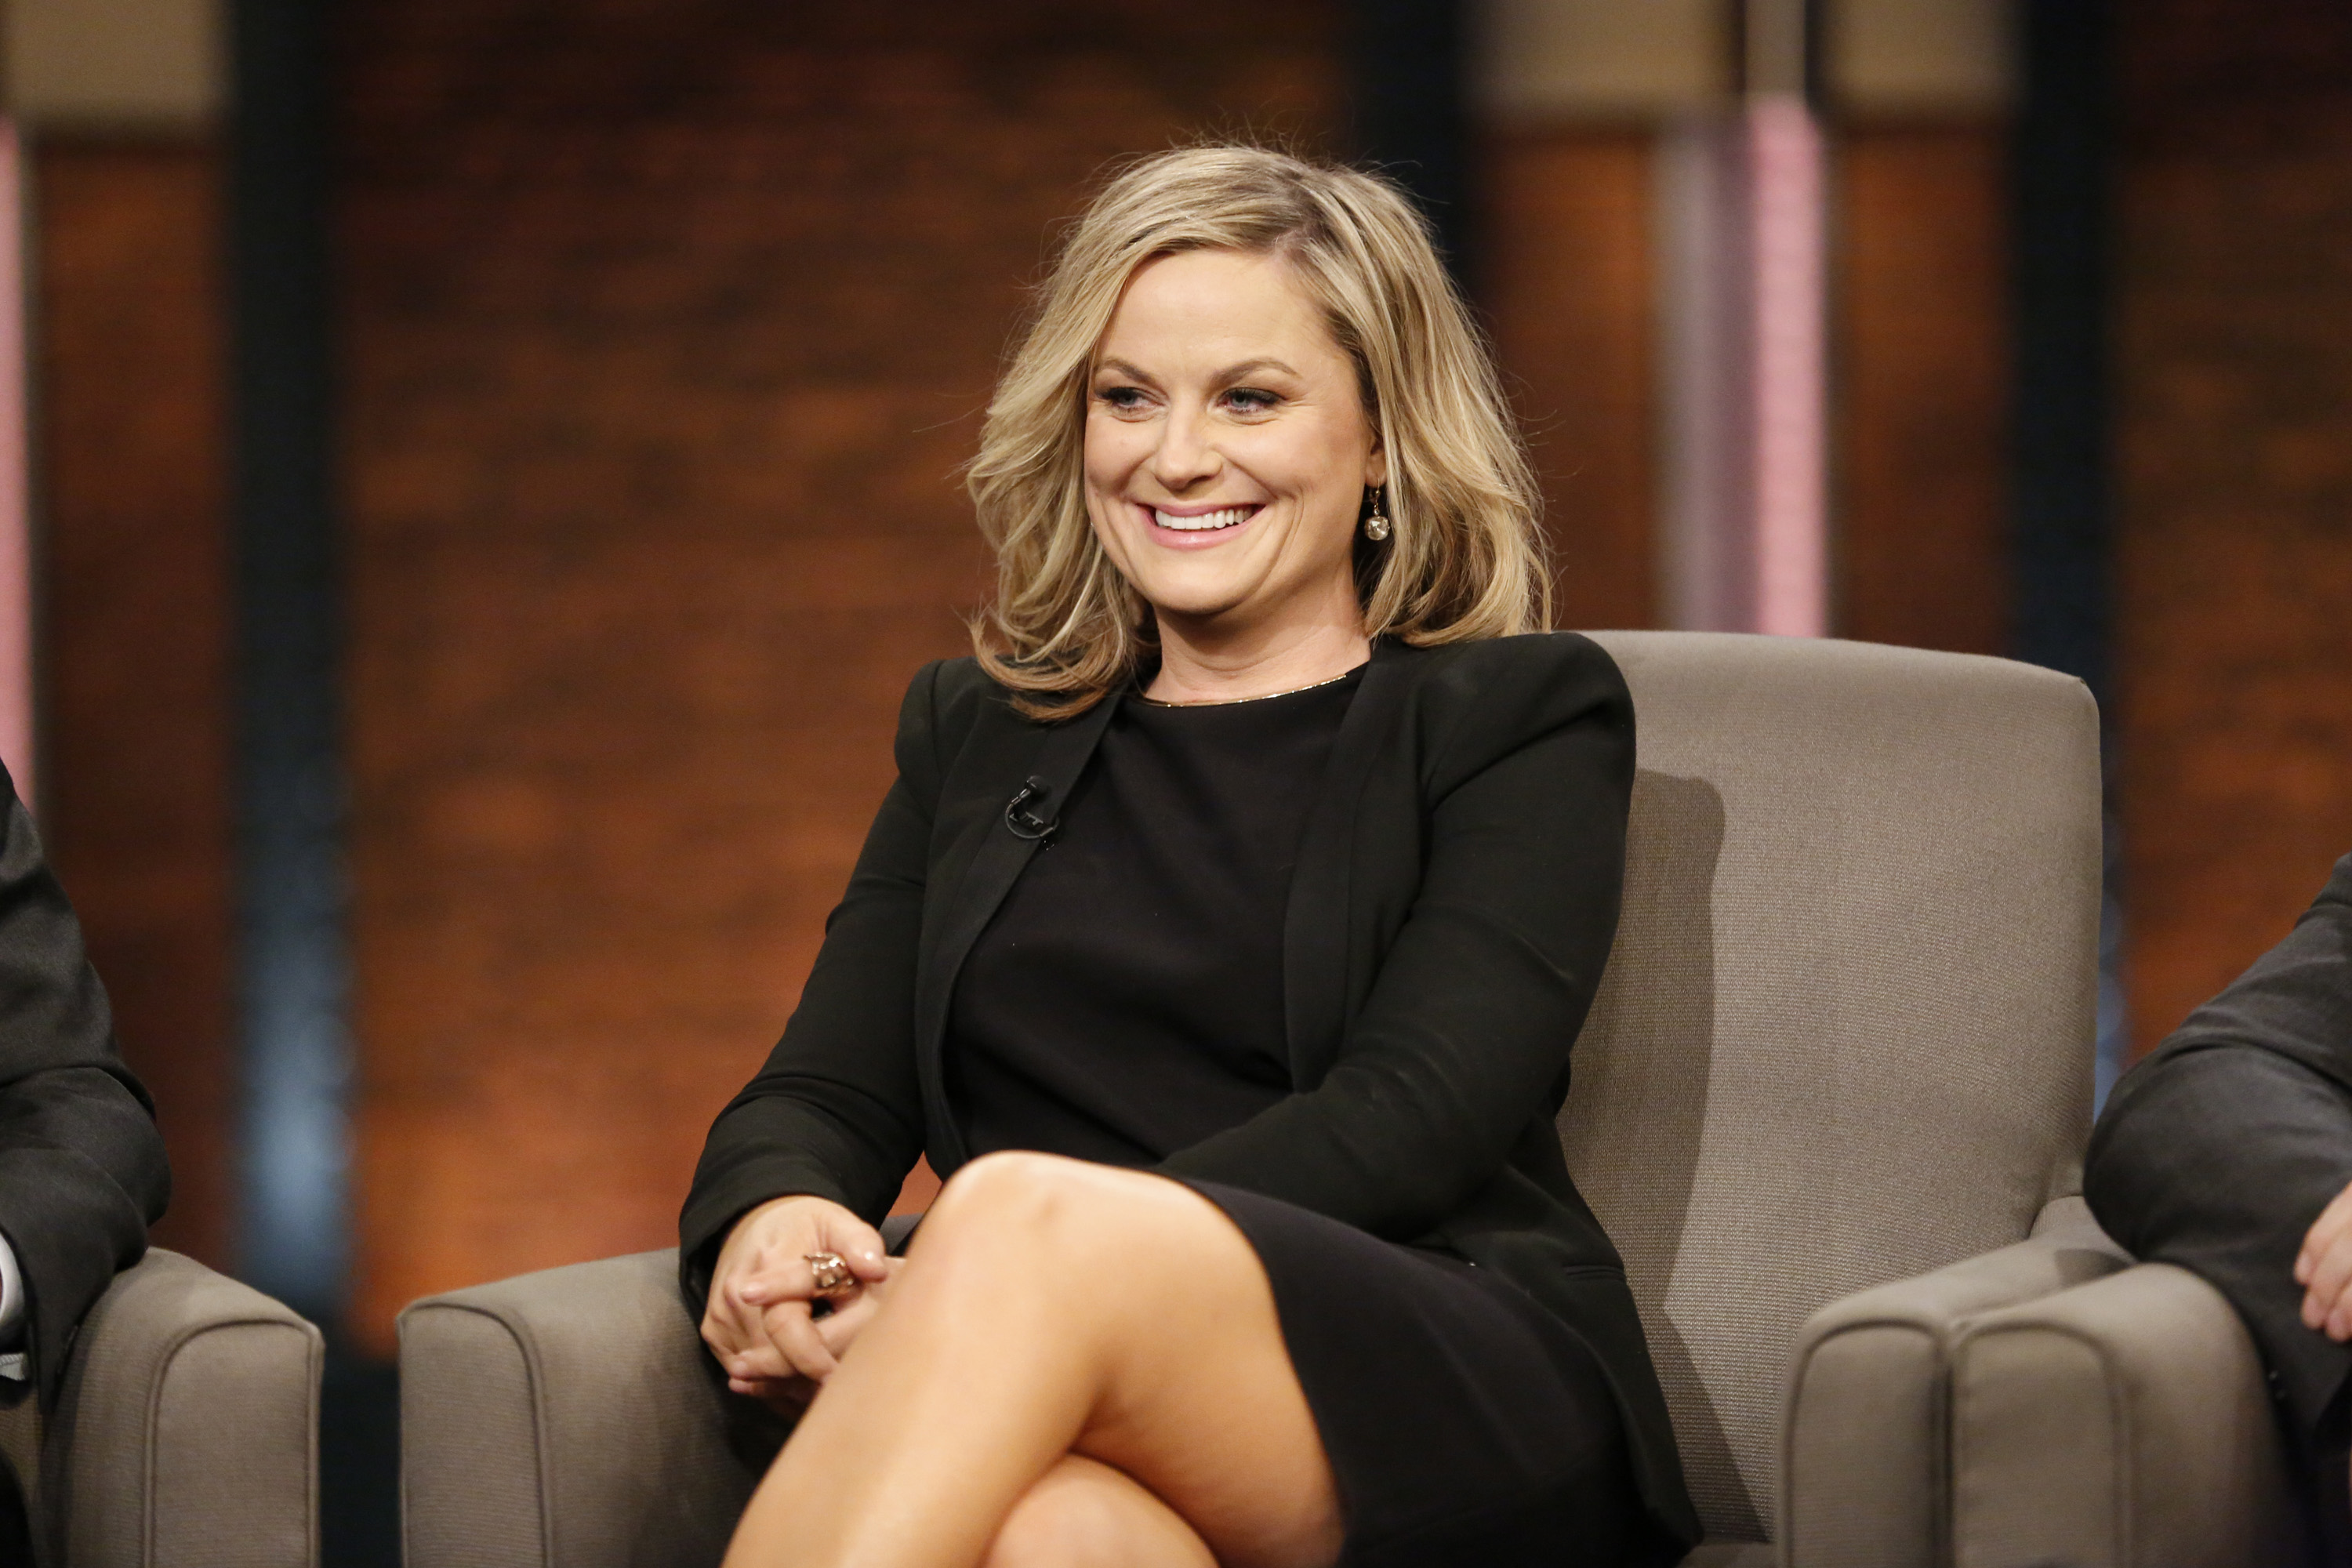 Pictured: Amy Poehler of 'Parks and Recreation' during an interview on February 24, 2015.